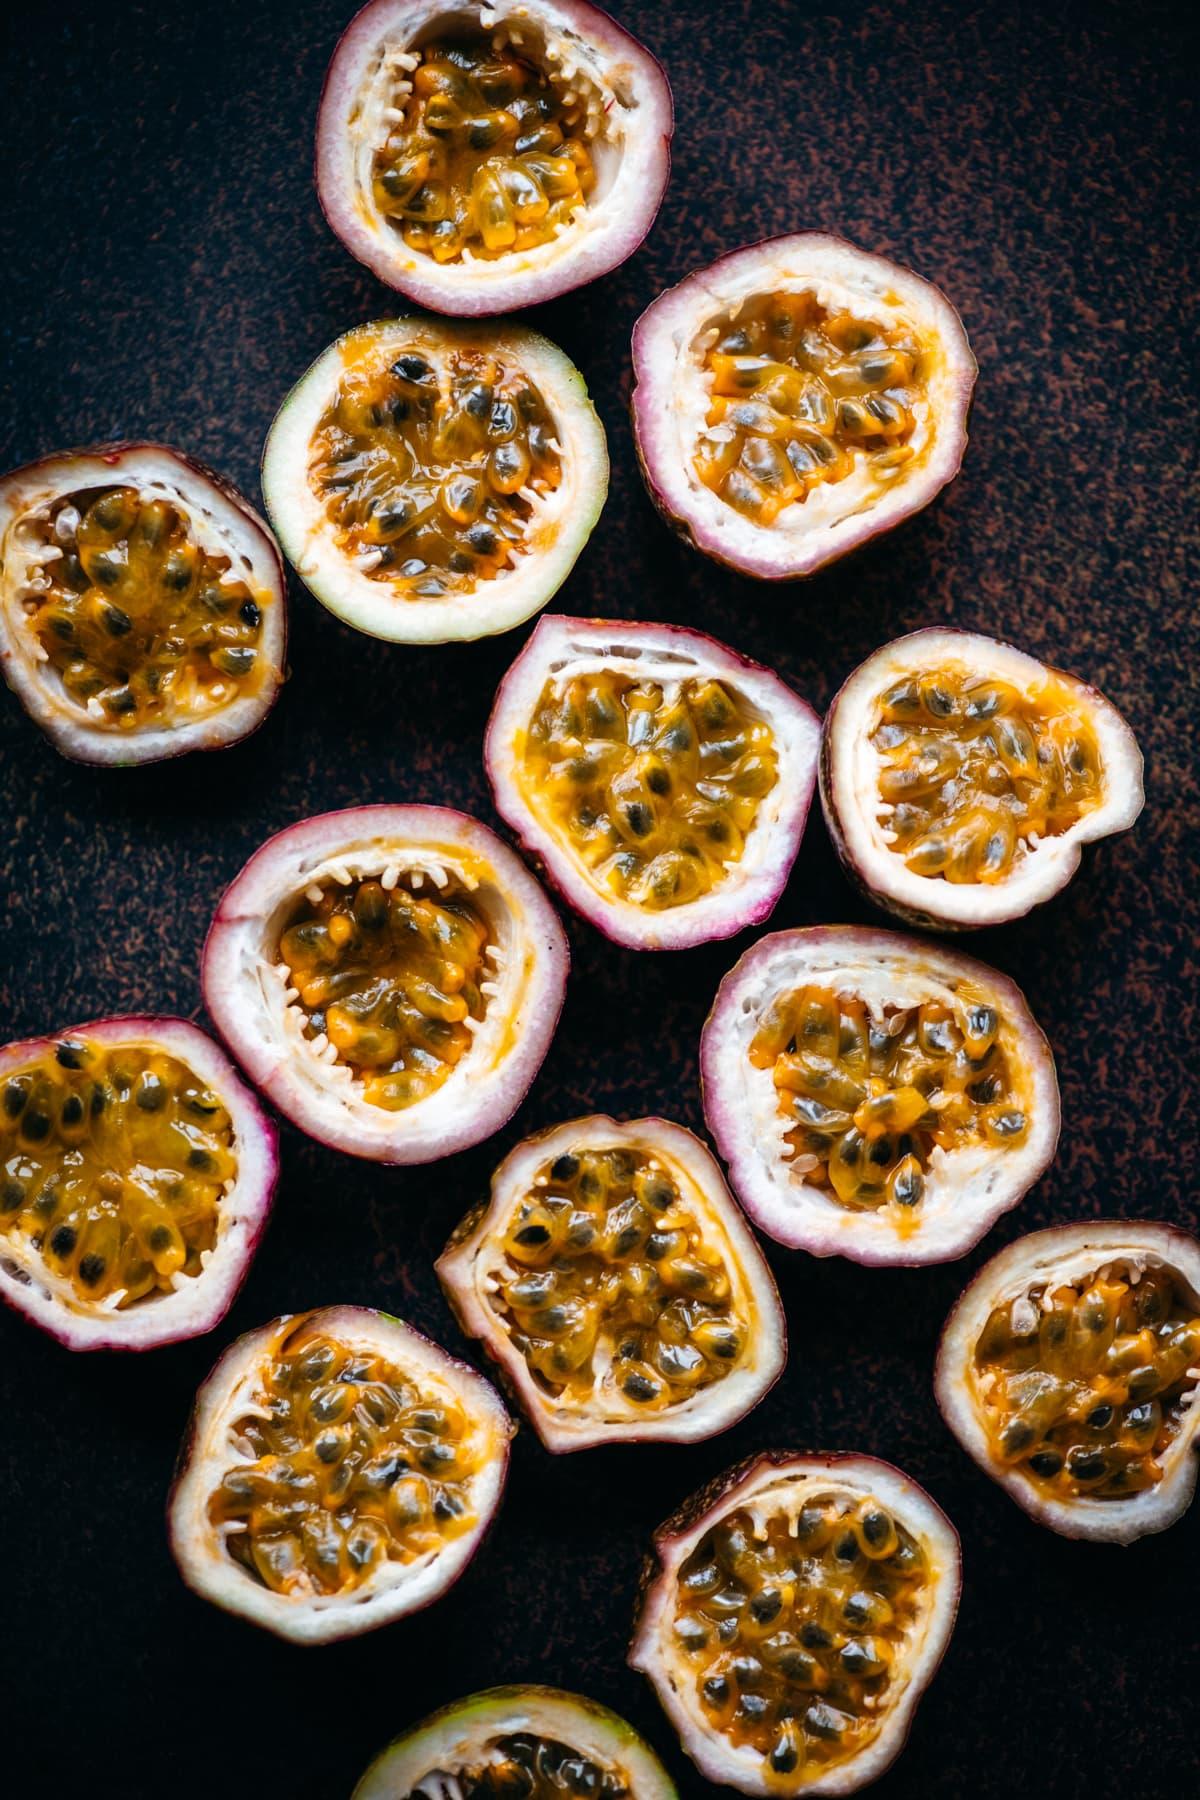 overhead view of fresh passion fruit halves on dark background.